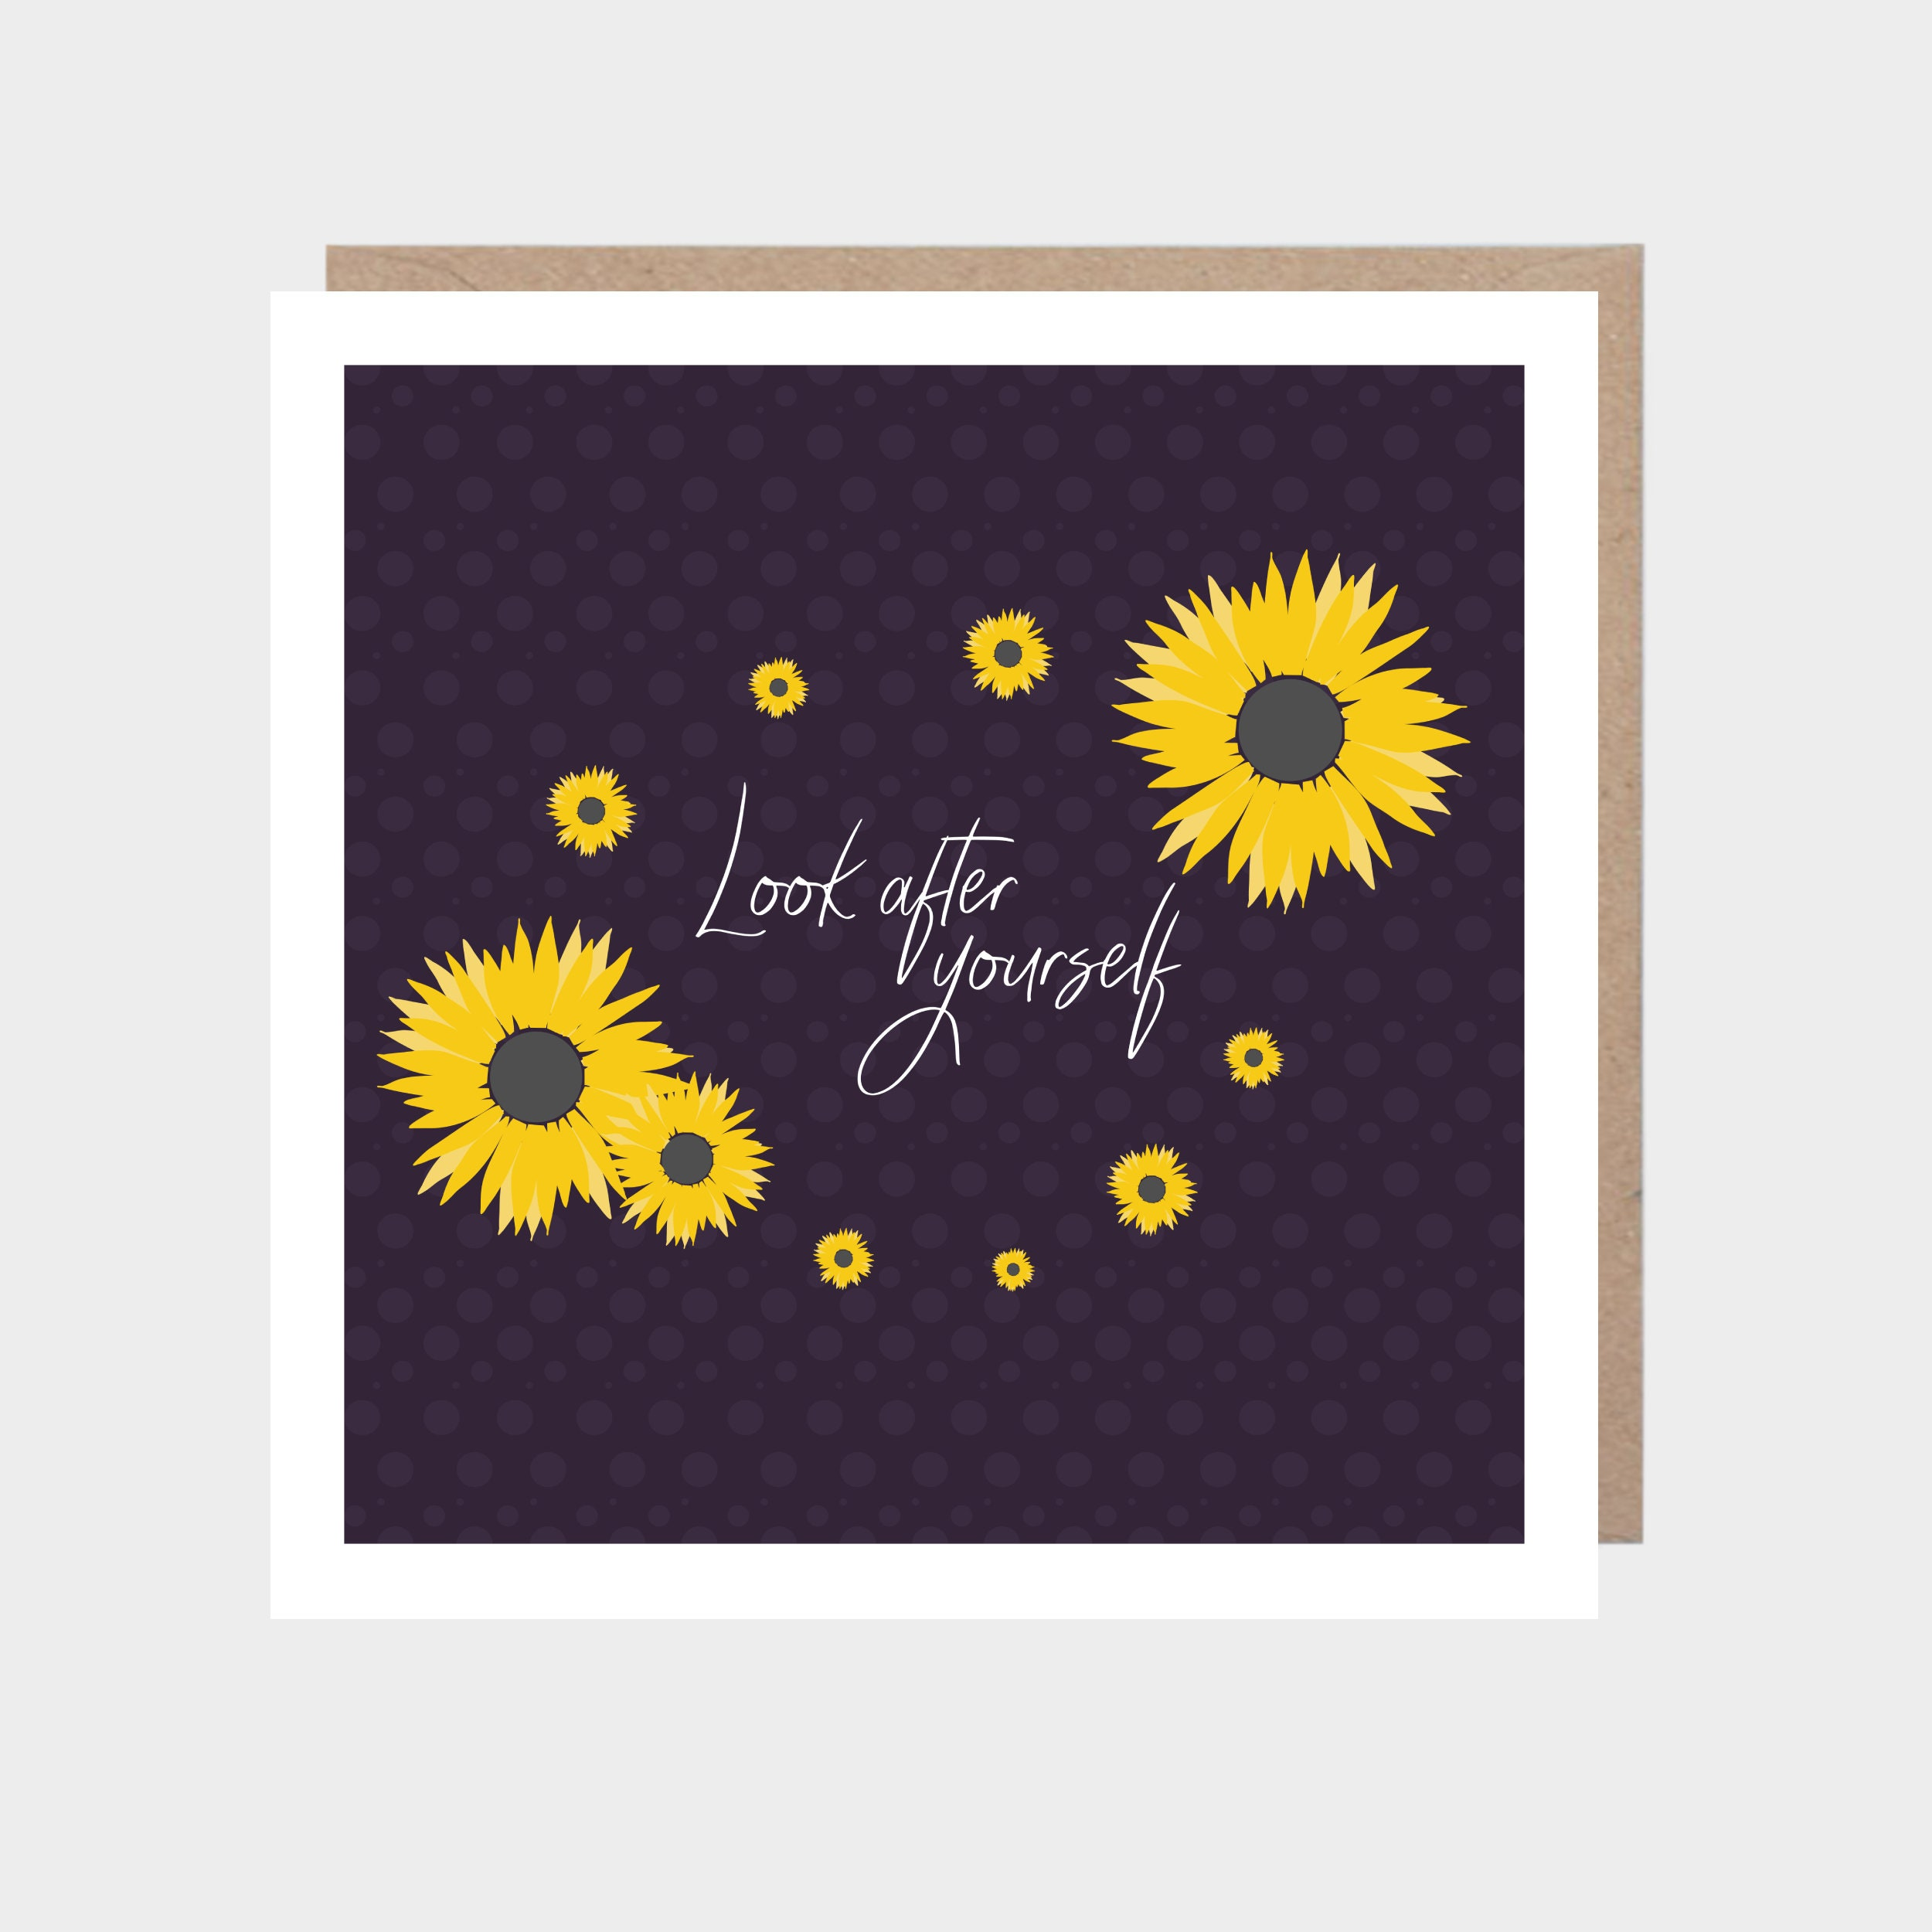 Dark purple square card with illustrated sunflowers, with a brown kraft envelope